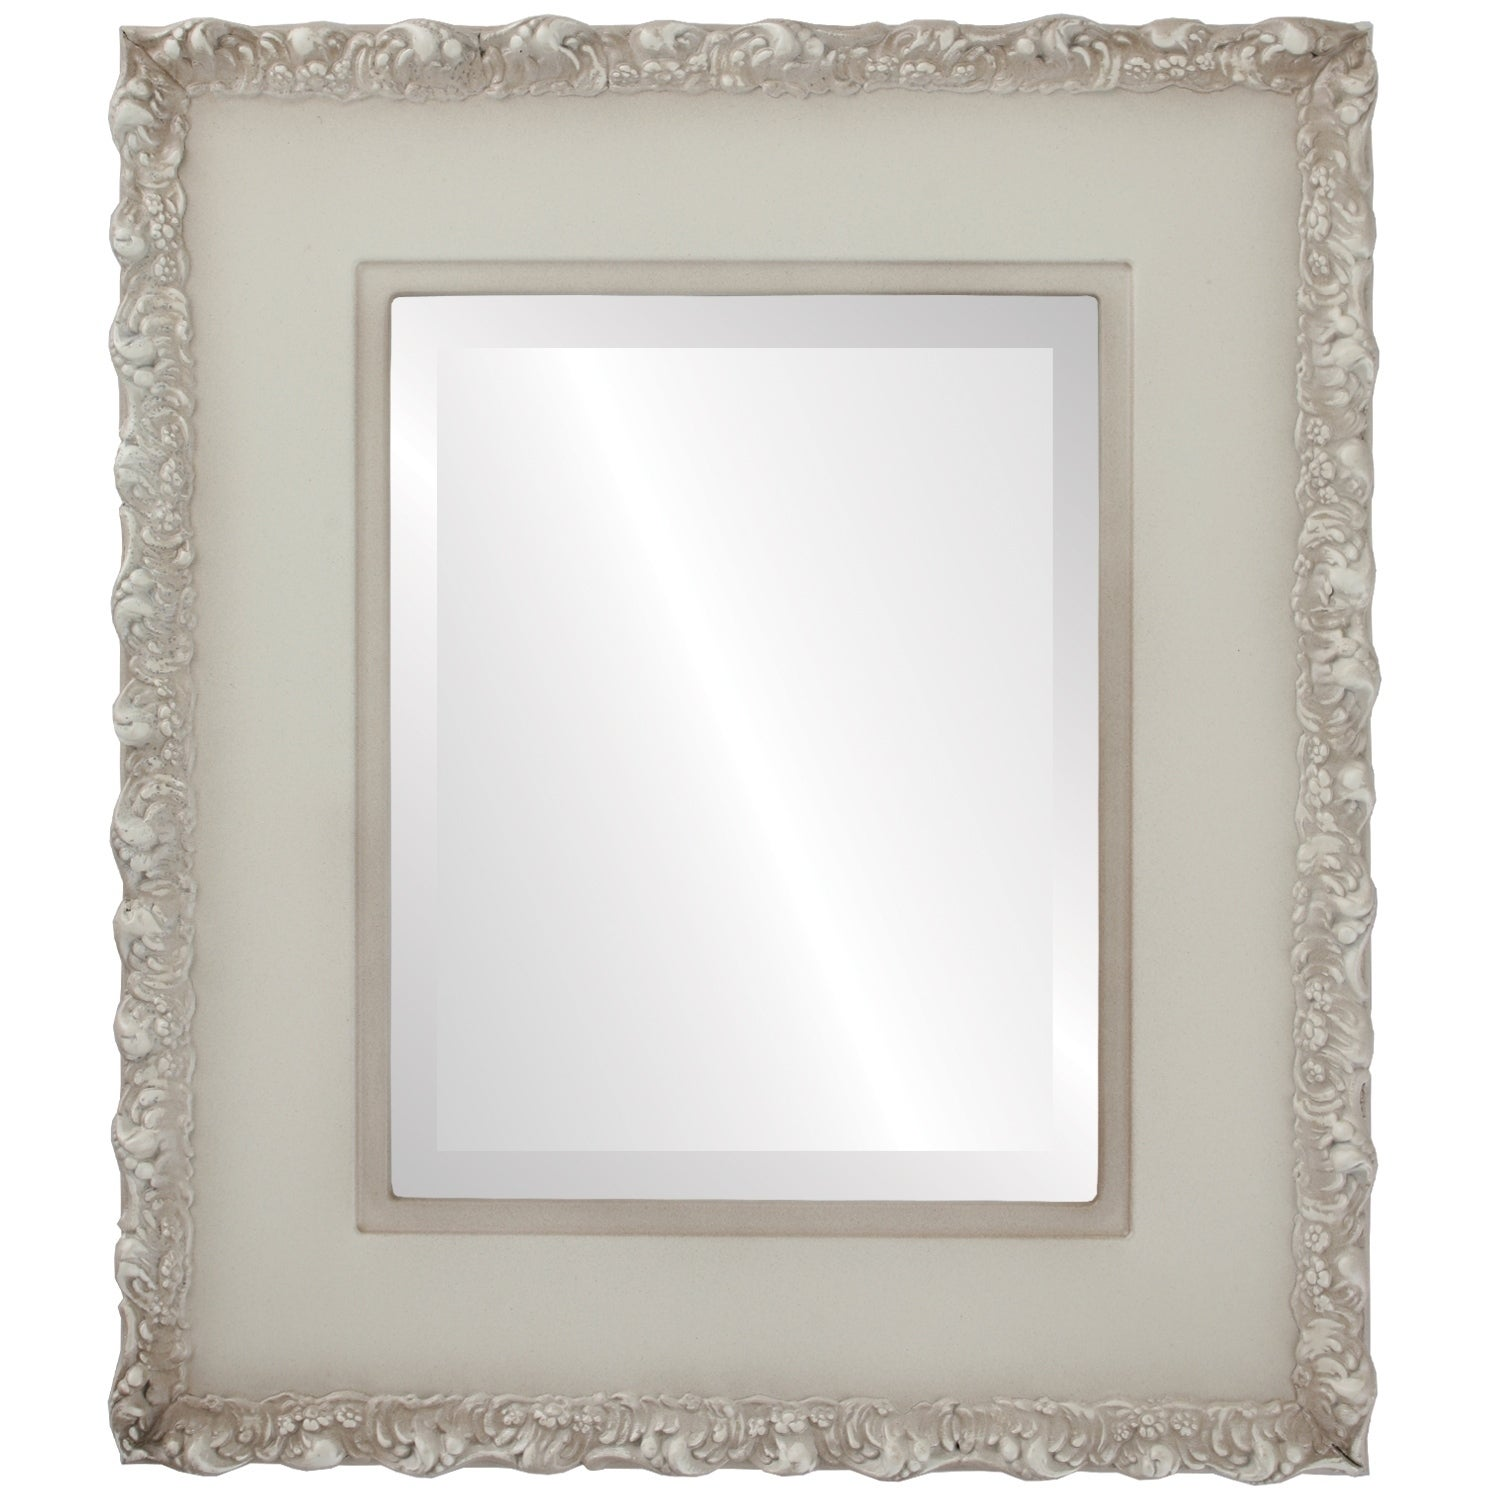 Williamsburg Framed Rectangle Mirror in Taupe (31x37 - Medium (15-32 high))